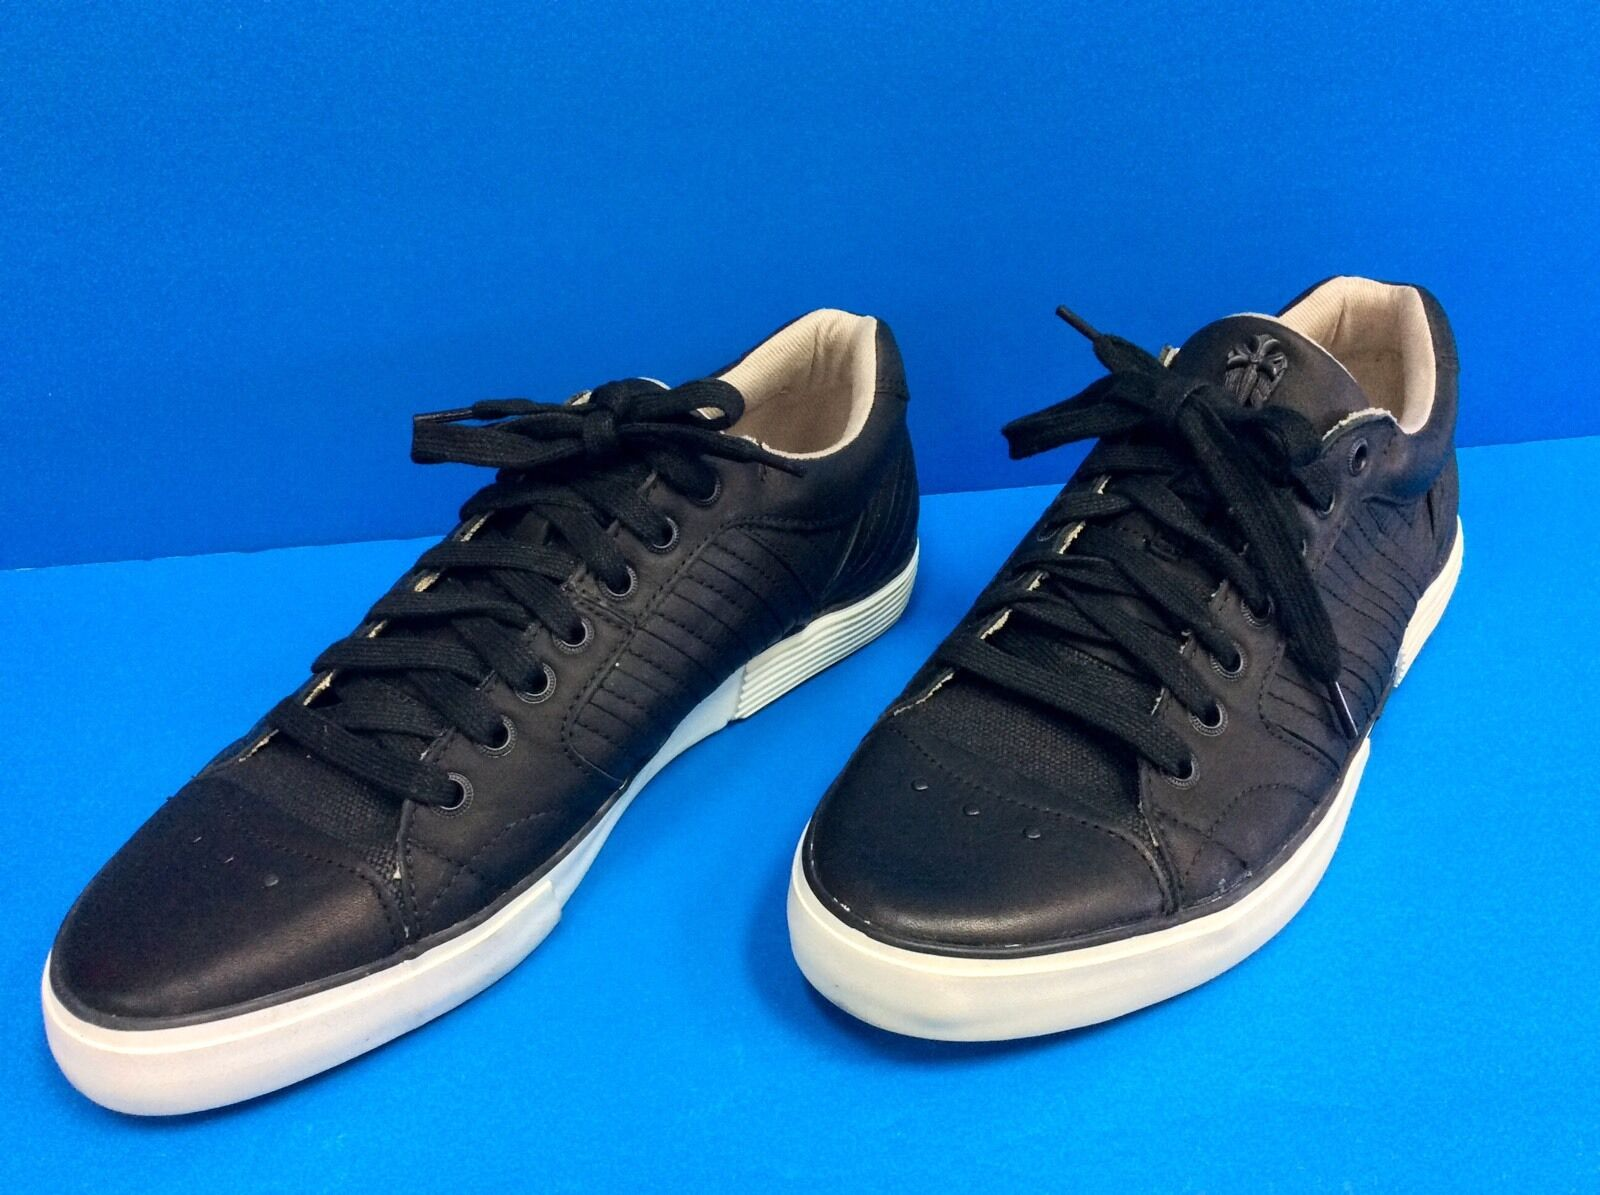 LOUNGE BY MARK NASON FASHION MAN'S LEATHER TENNIS 41.5 Schuhe SIZE 8.5 USA 41.5 TENNIS EURO b8fa3f